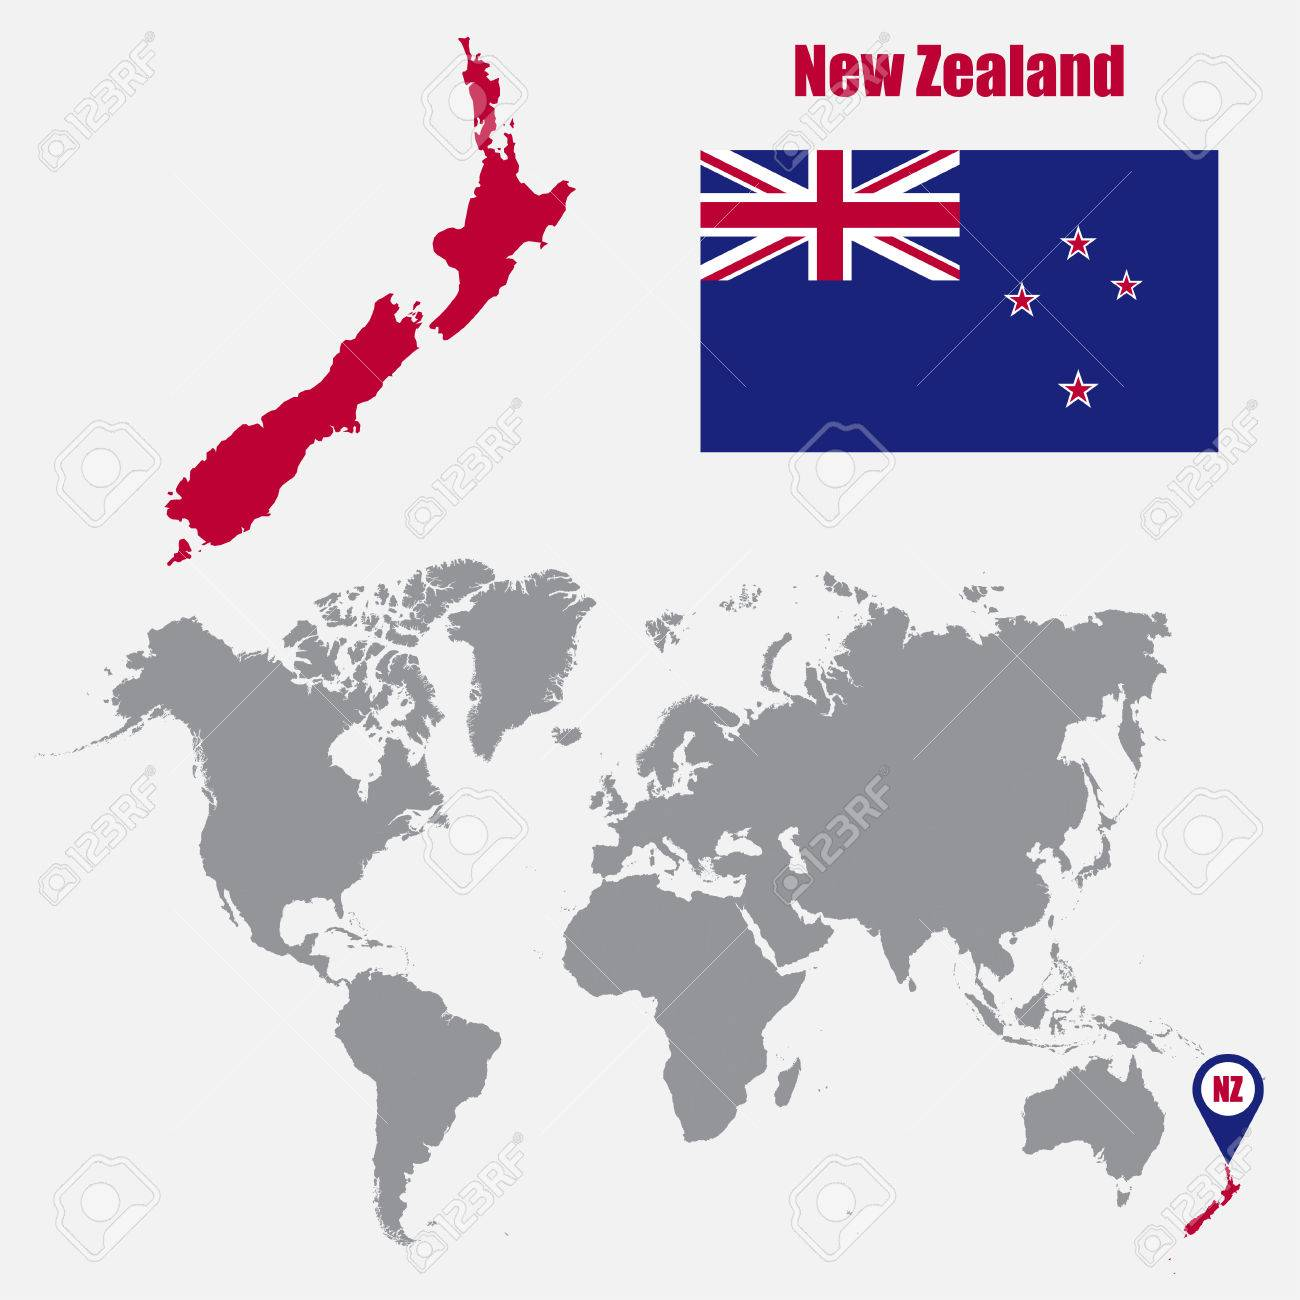 New Zealand Map On World.New Zealand Map On A World Map With Flag And Map Pointer Vector